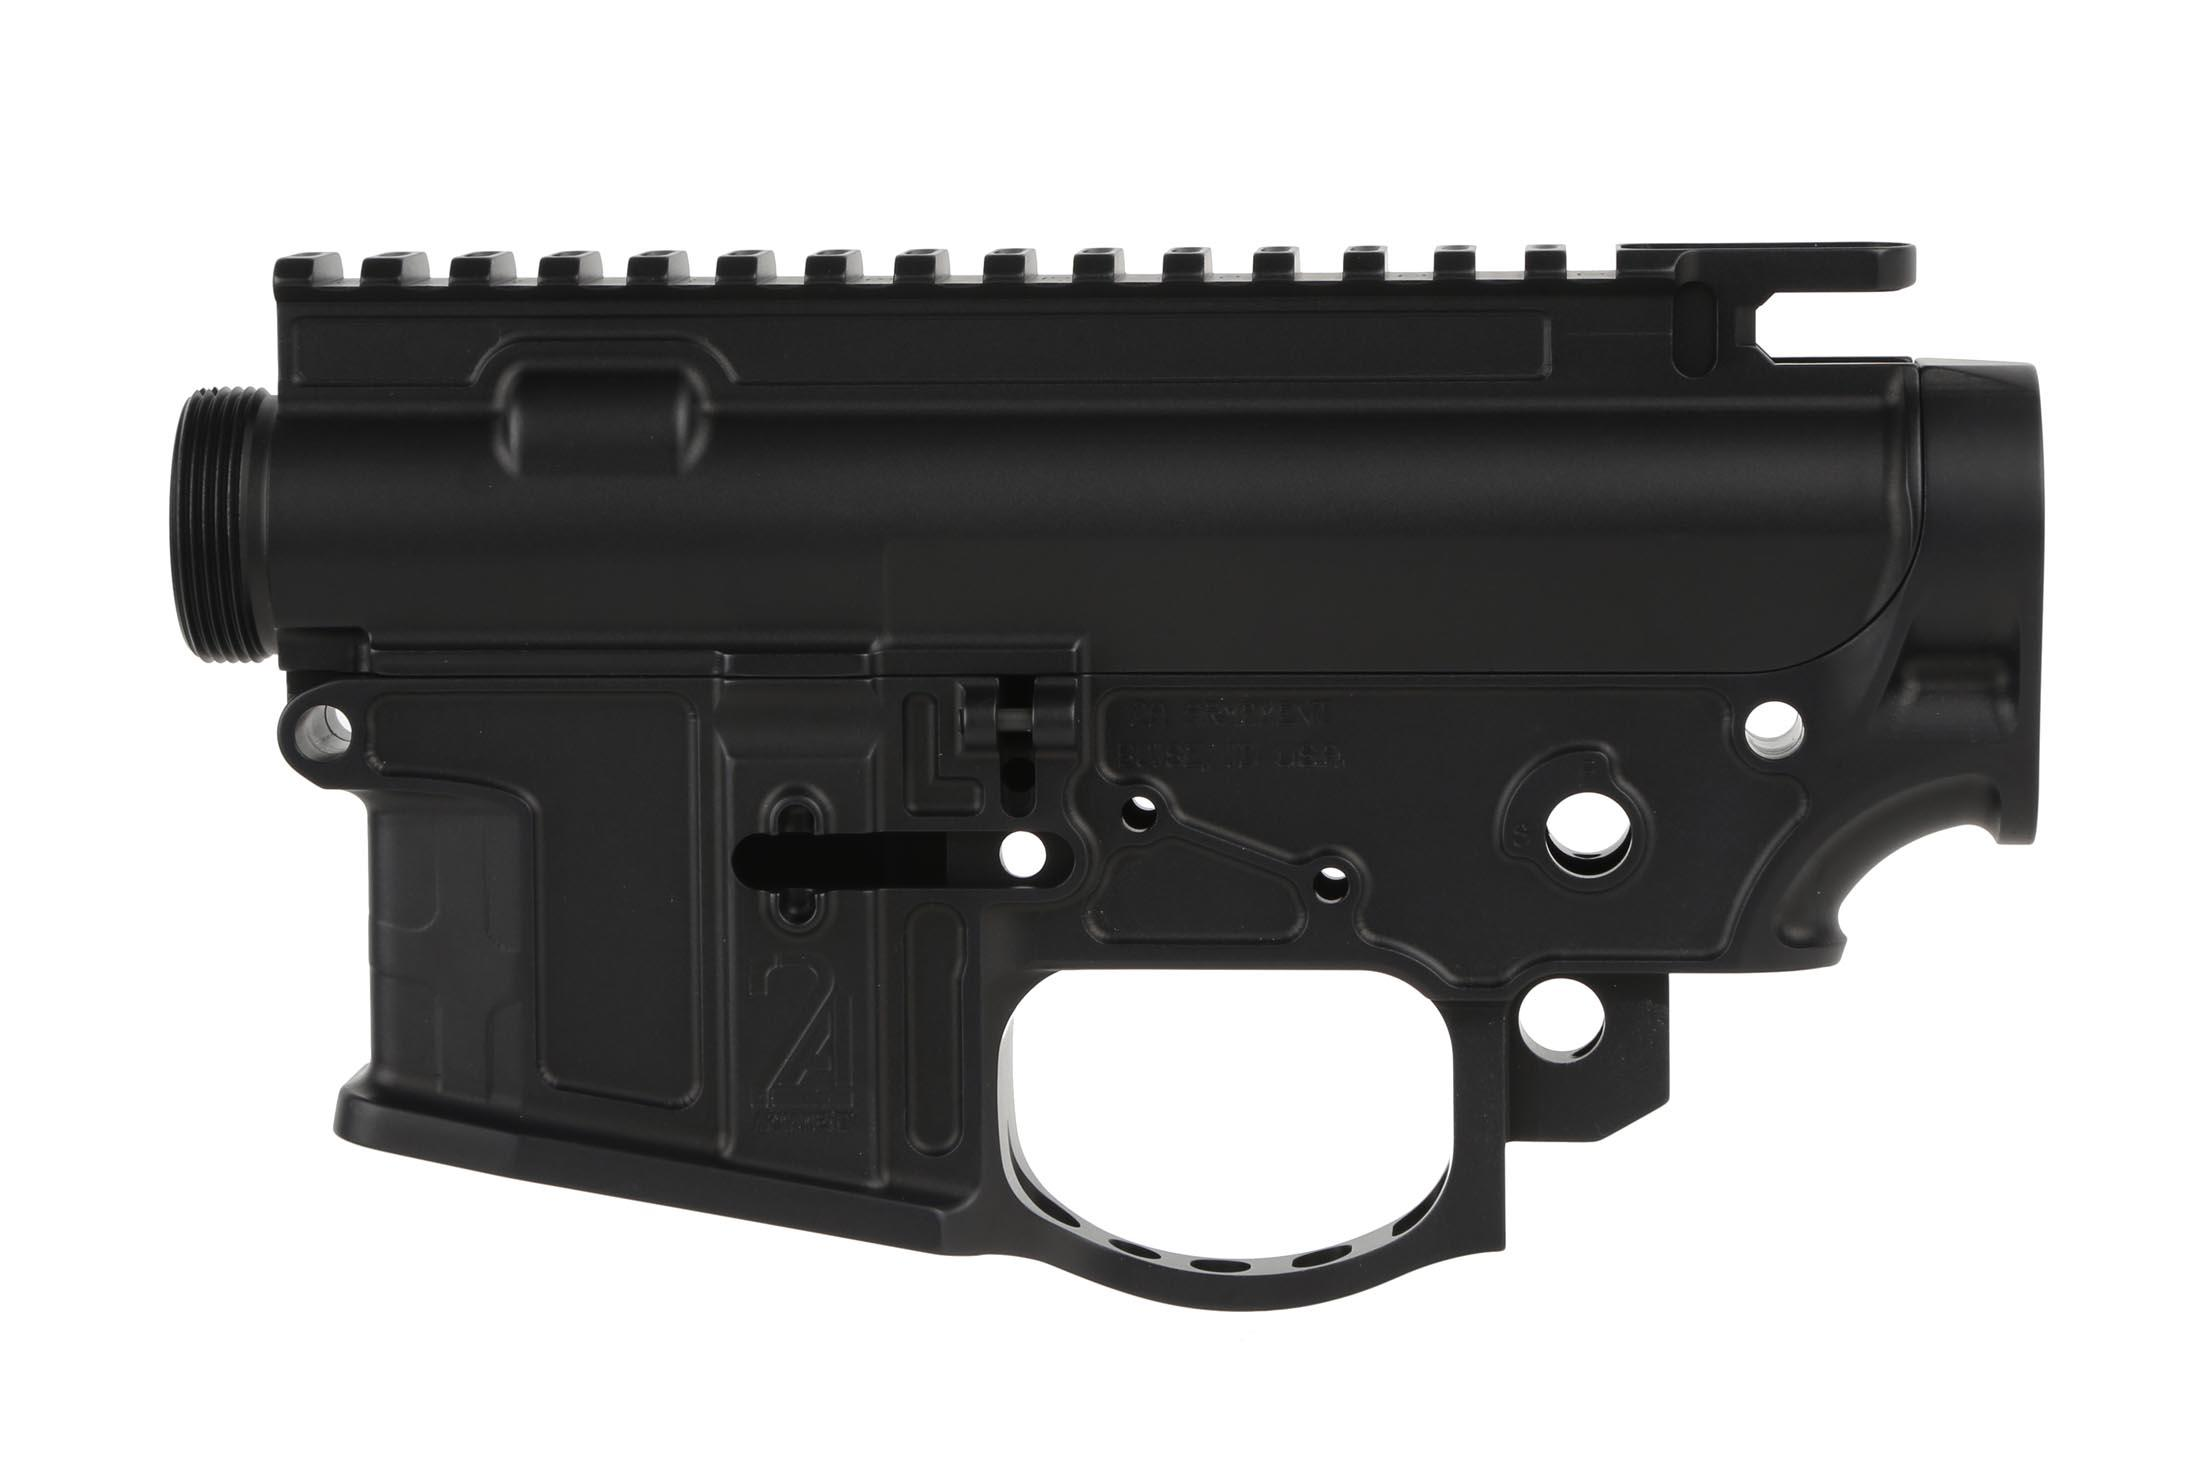 The 2A Armament Balios Lite Gen 2 receiver set has an integrated trigger guard and flared magazine well